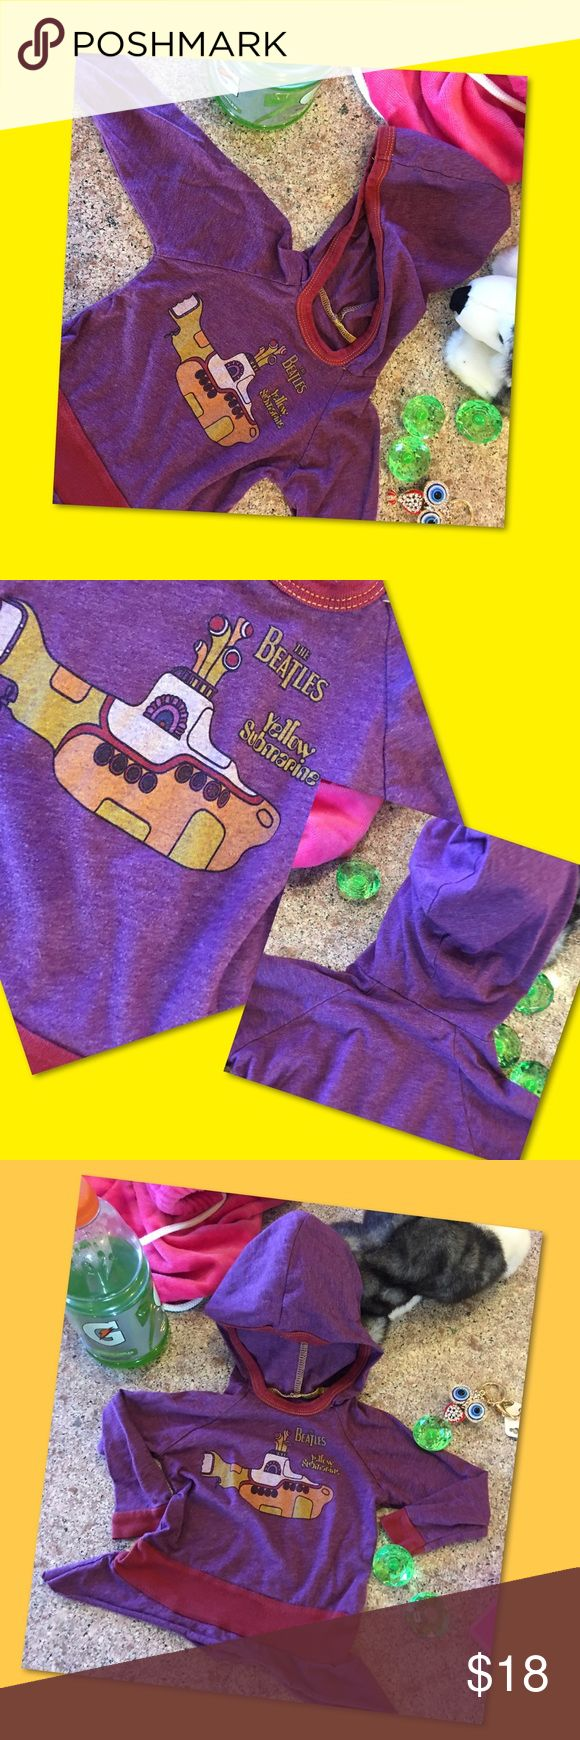 Yellow Submarine It's cute, it's comfy 100% cotton, and it's an eclectic infant hoodie! Get your groove on and celebrate the Beatles in this adorable purple tee shirt style hoodie! Trendy fashion ole school style for your little one. Used adorbs item. Rowdy Sprout Shirts & Tops Tees - Long Sleeve